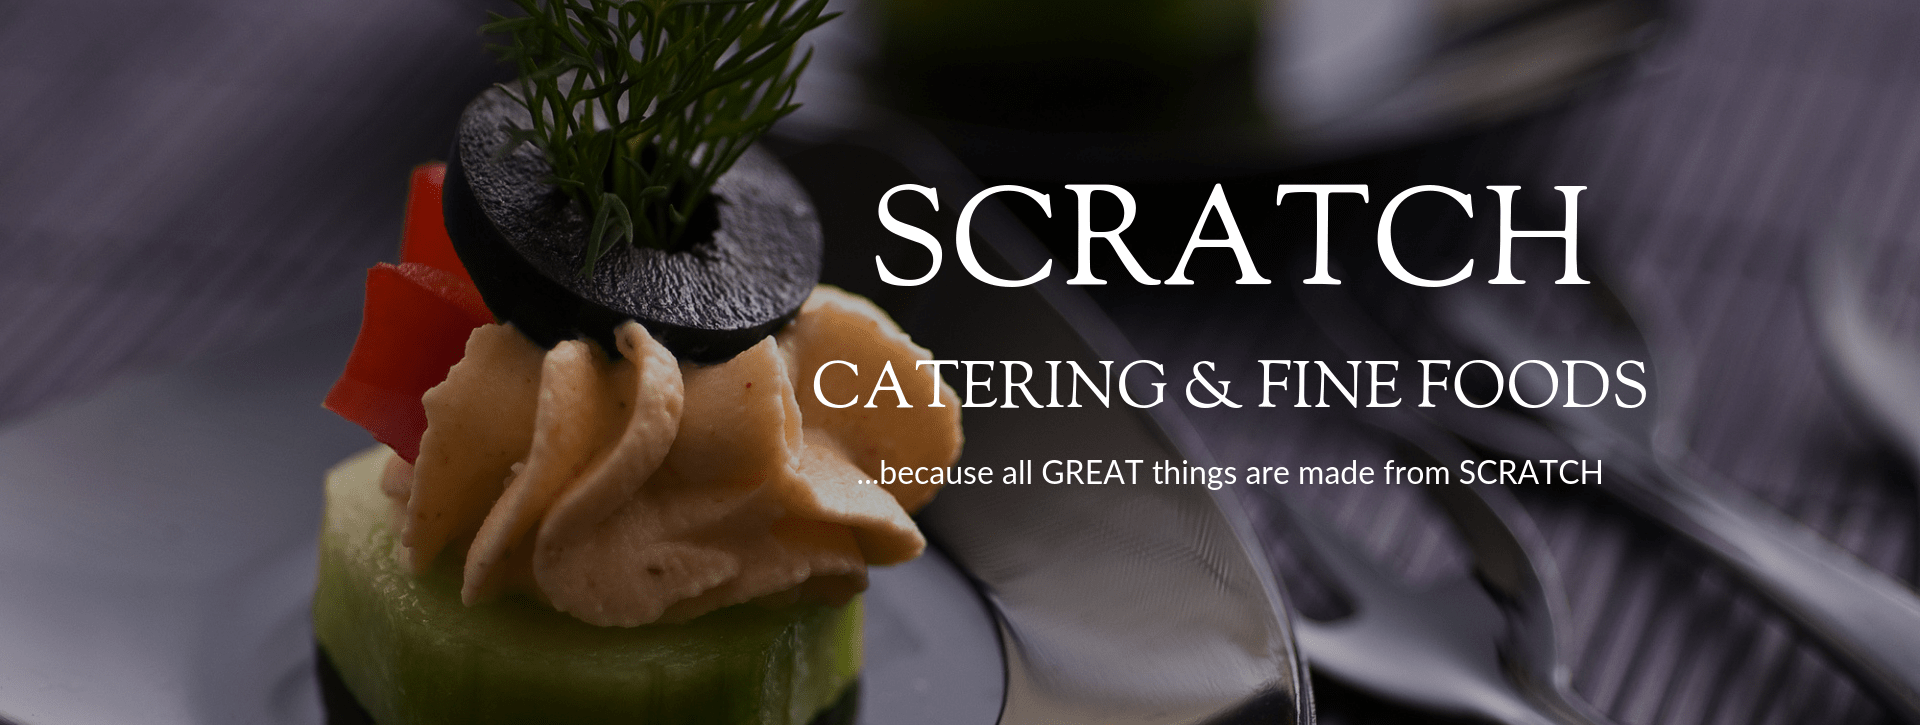 Scratch Catering header image